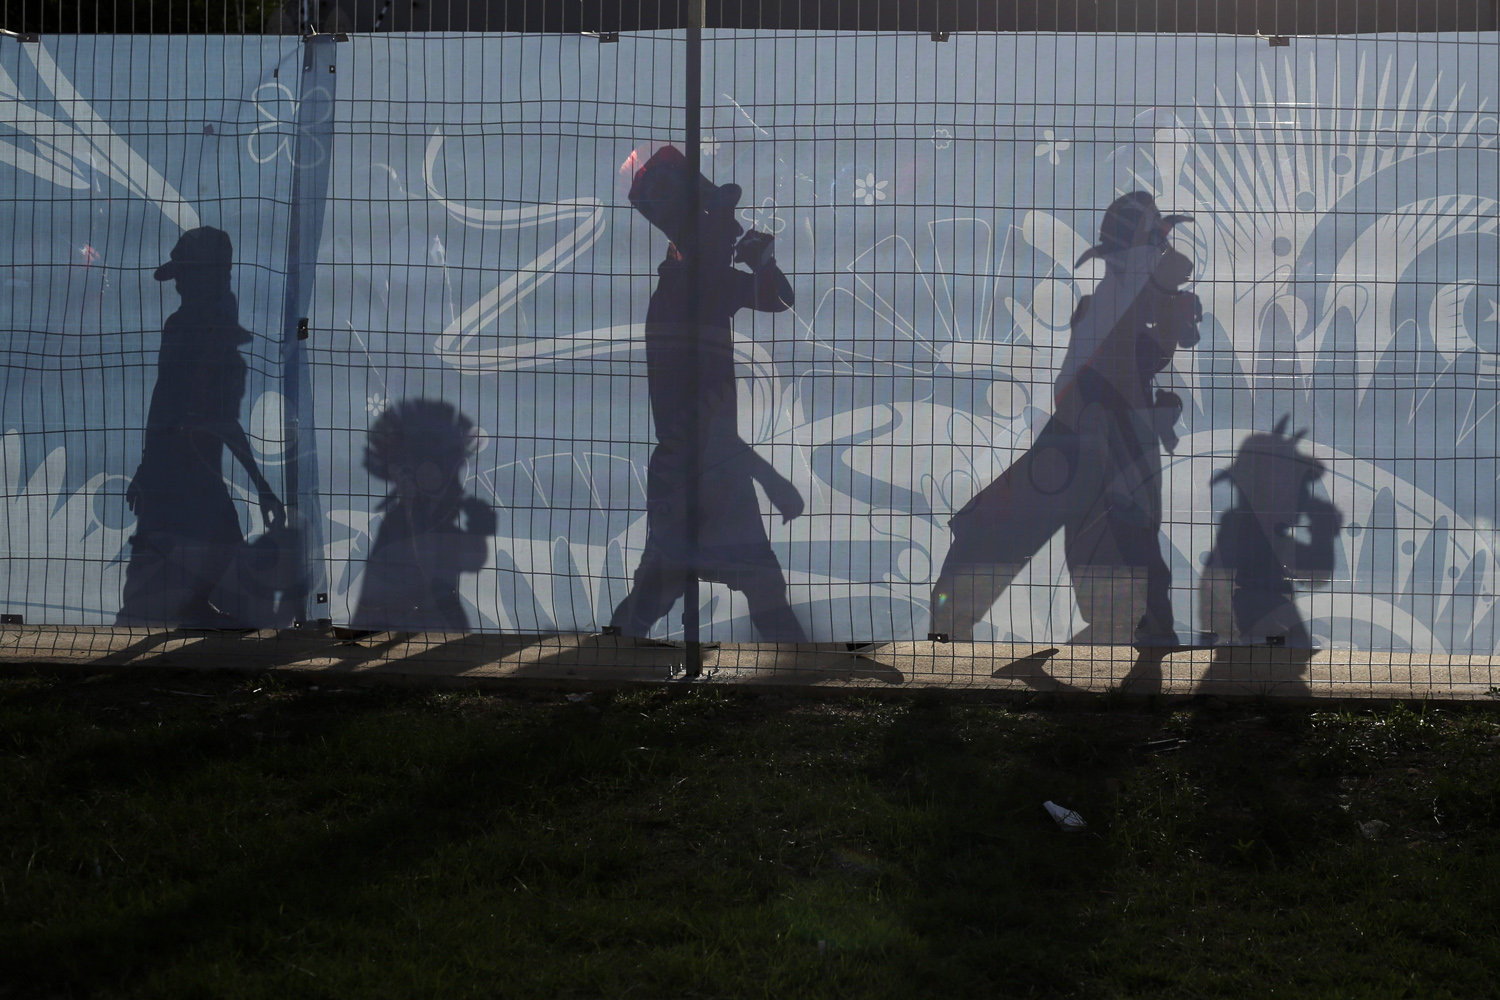 Jun. 13, 2014. The shadows of Chile soccer fans are cast on a fence outside the Arena Pantanal as they arrive to their team's World Cup match with Australia in Cuiaba, Brazil.